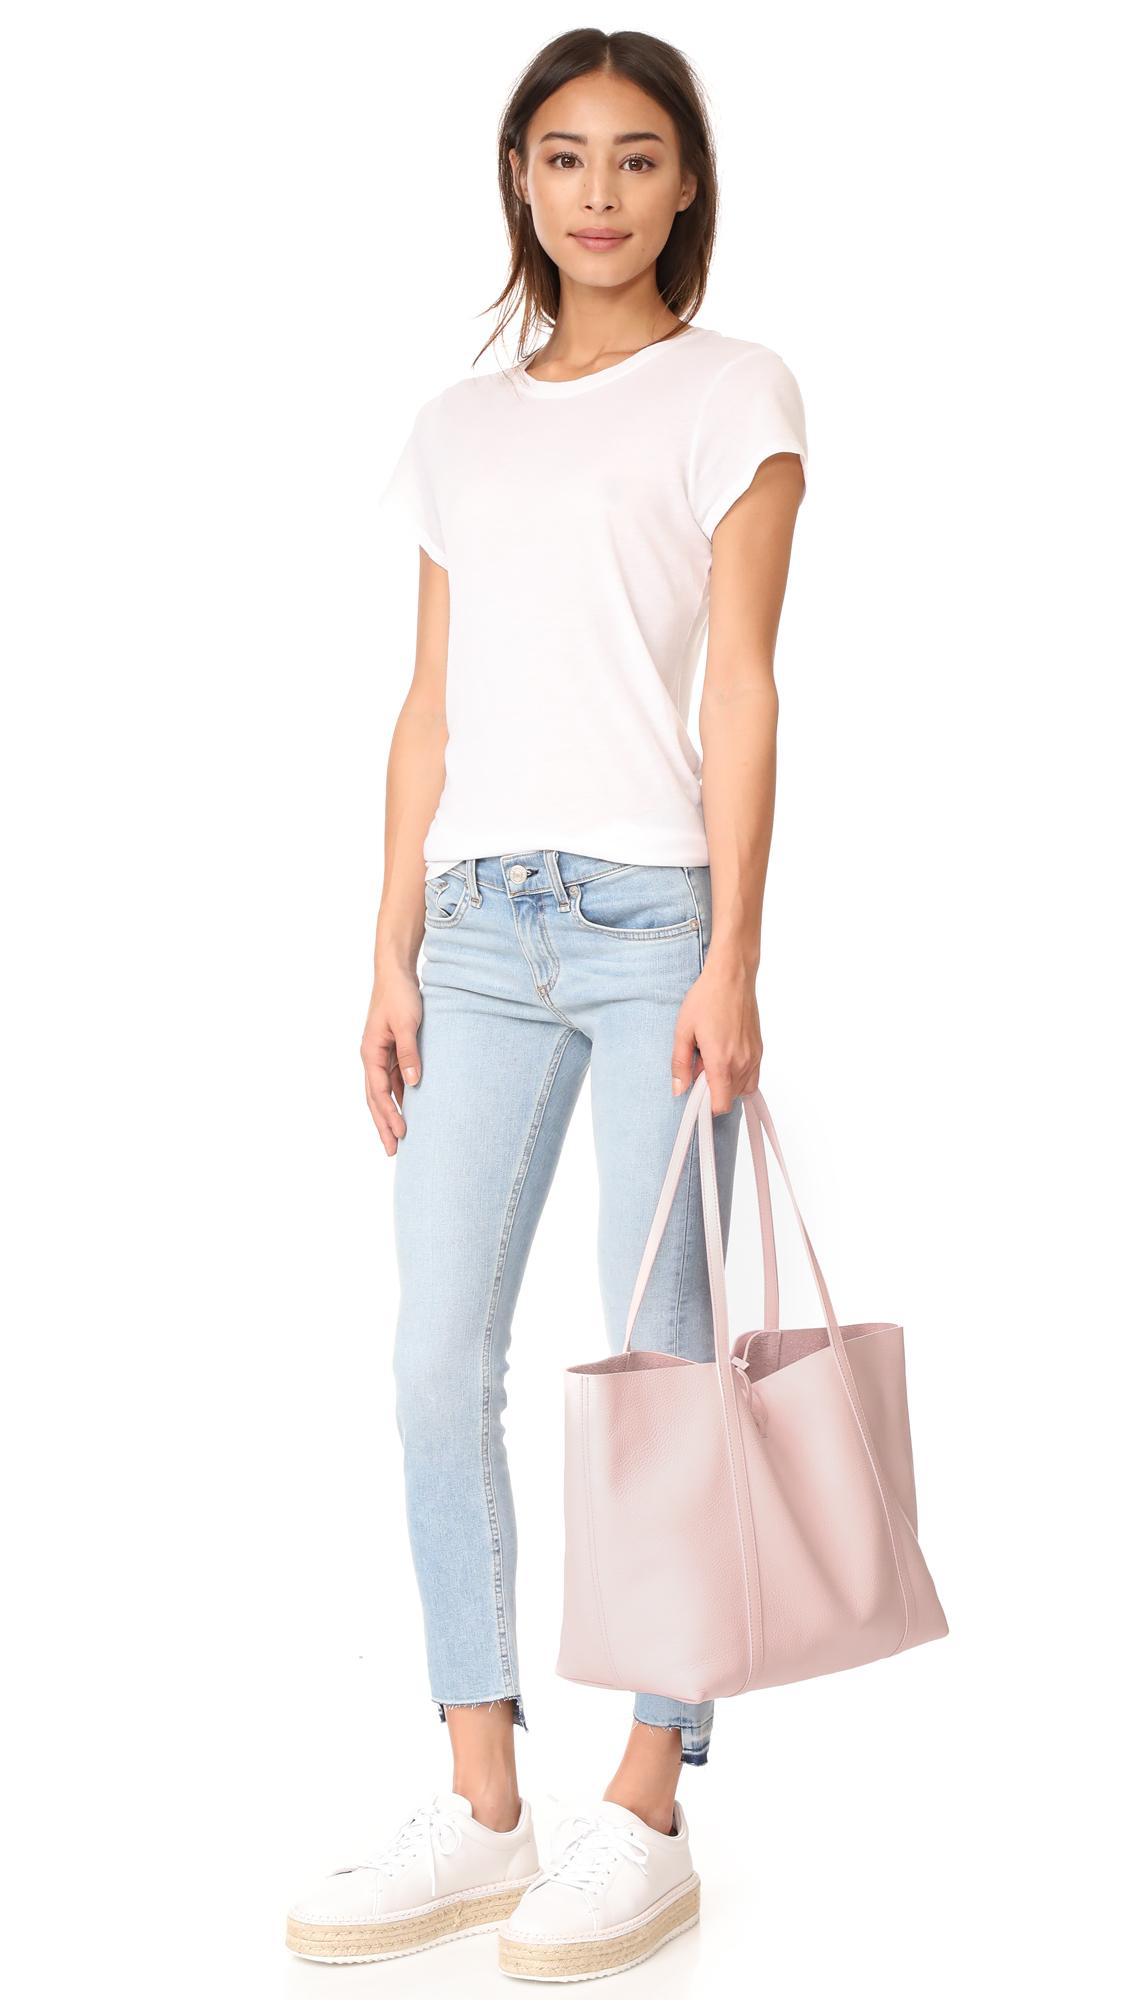 Kara Leather Tie Tote in Blush Pink (Pink)